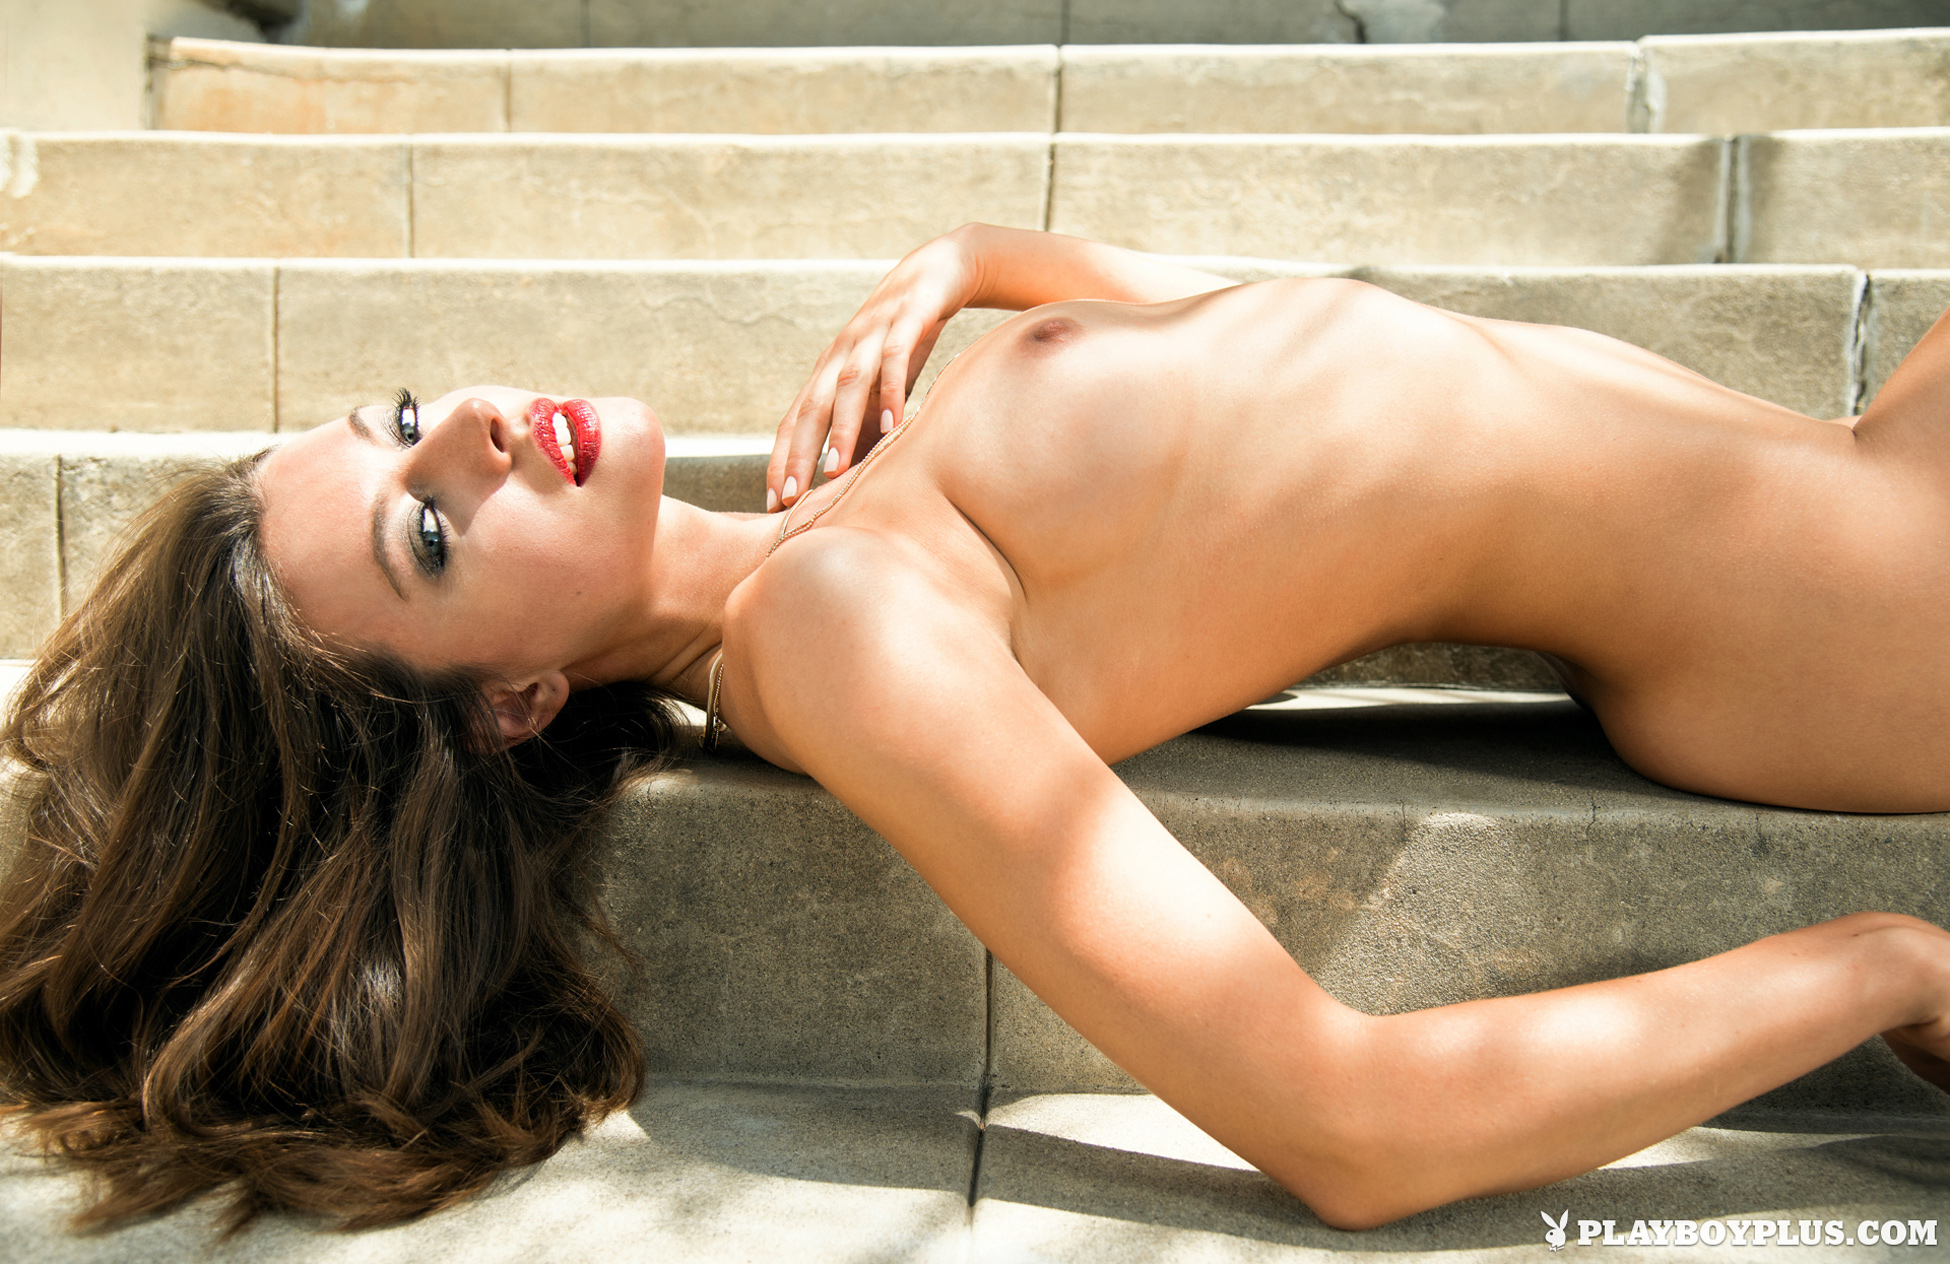 Nude glamour models wendy june